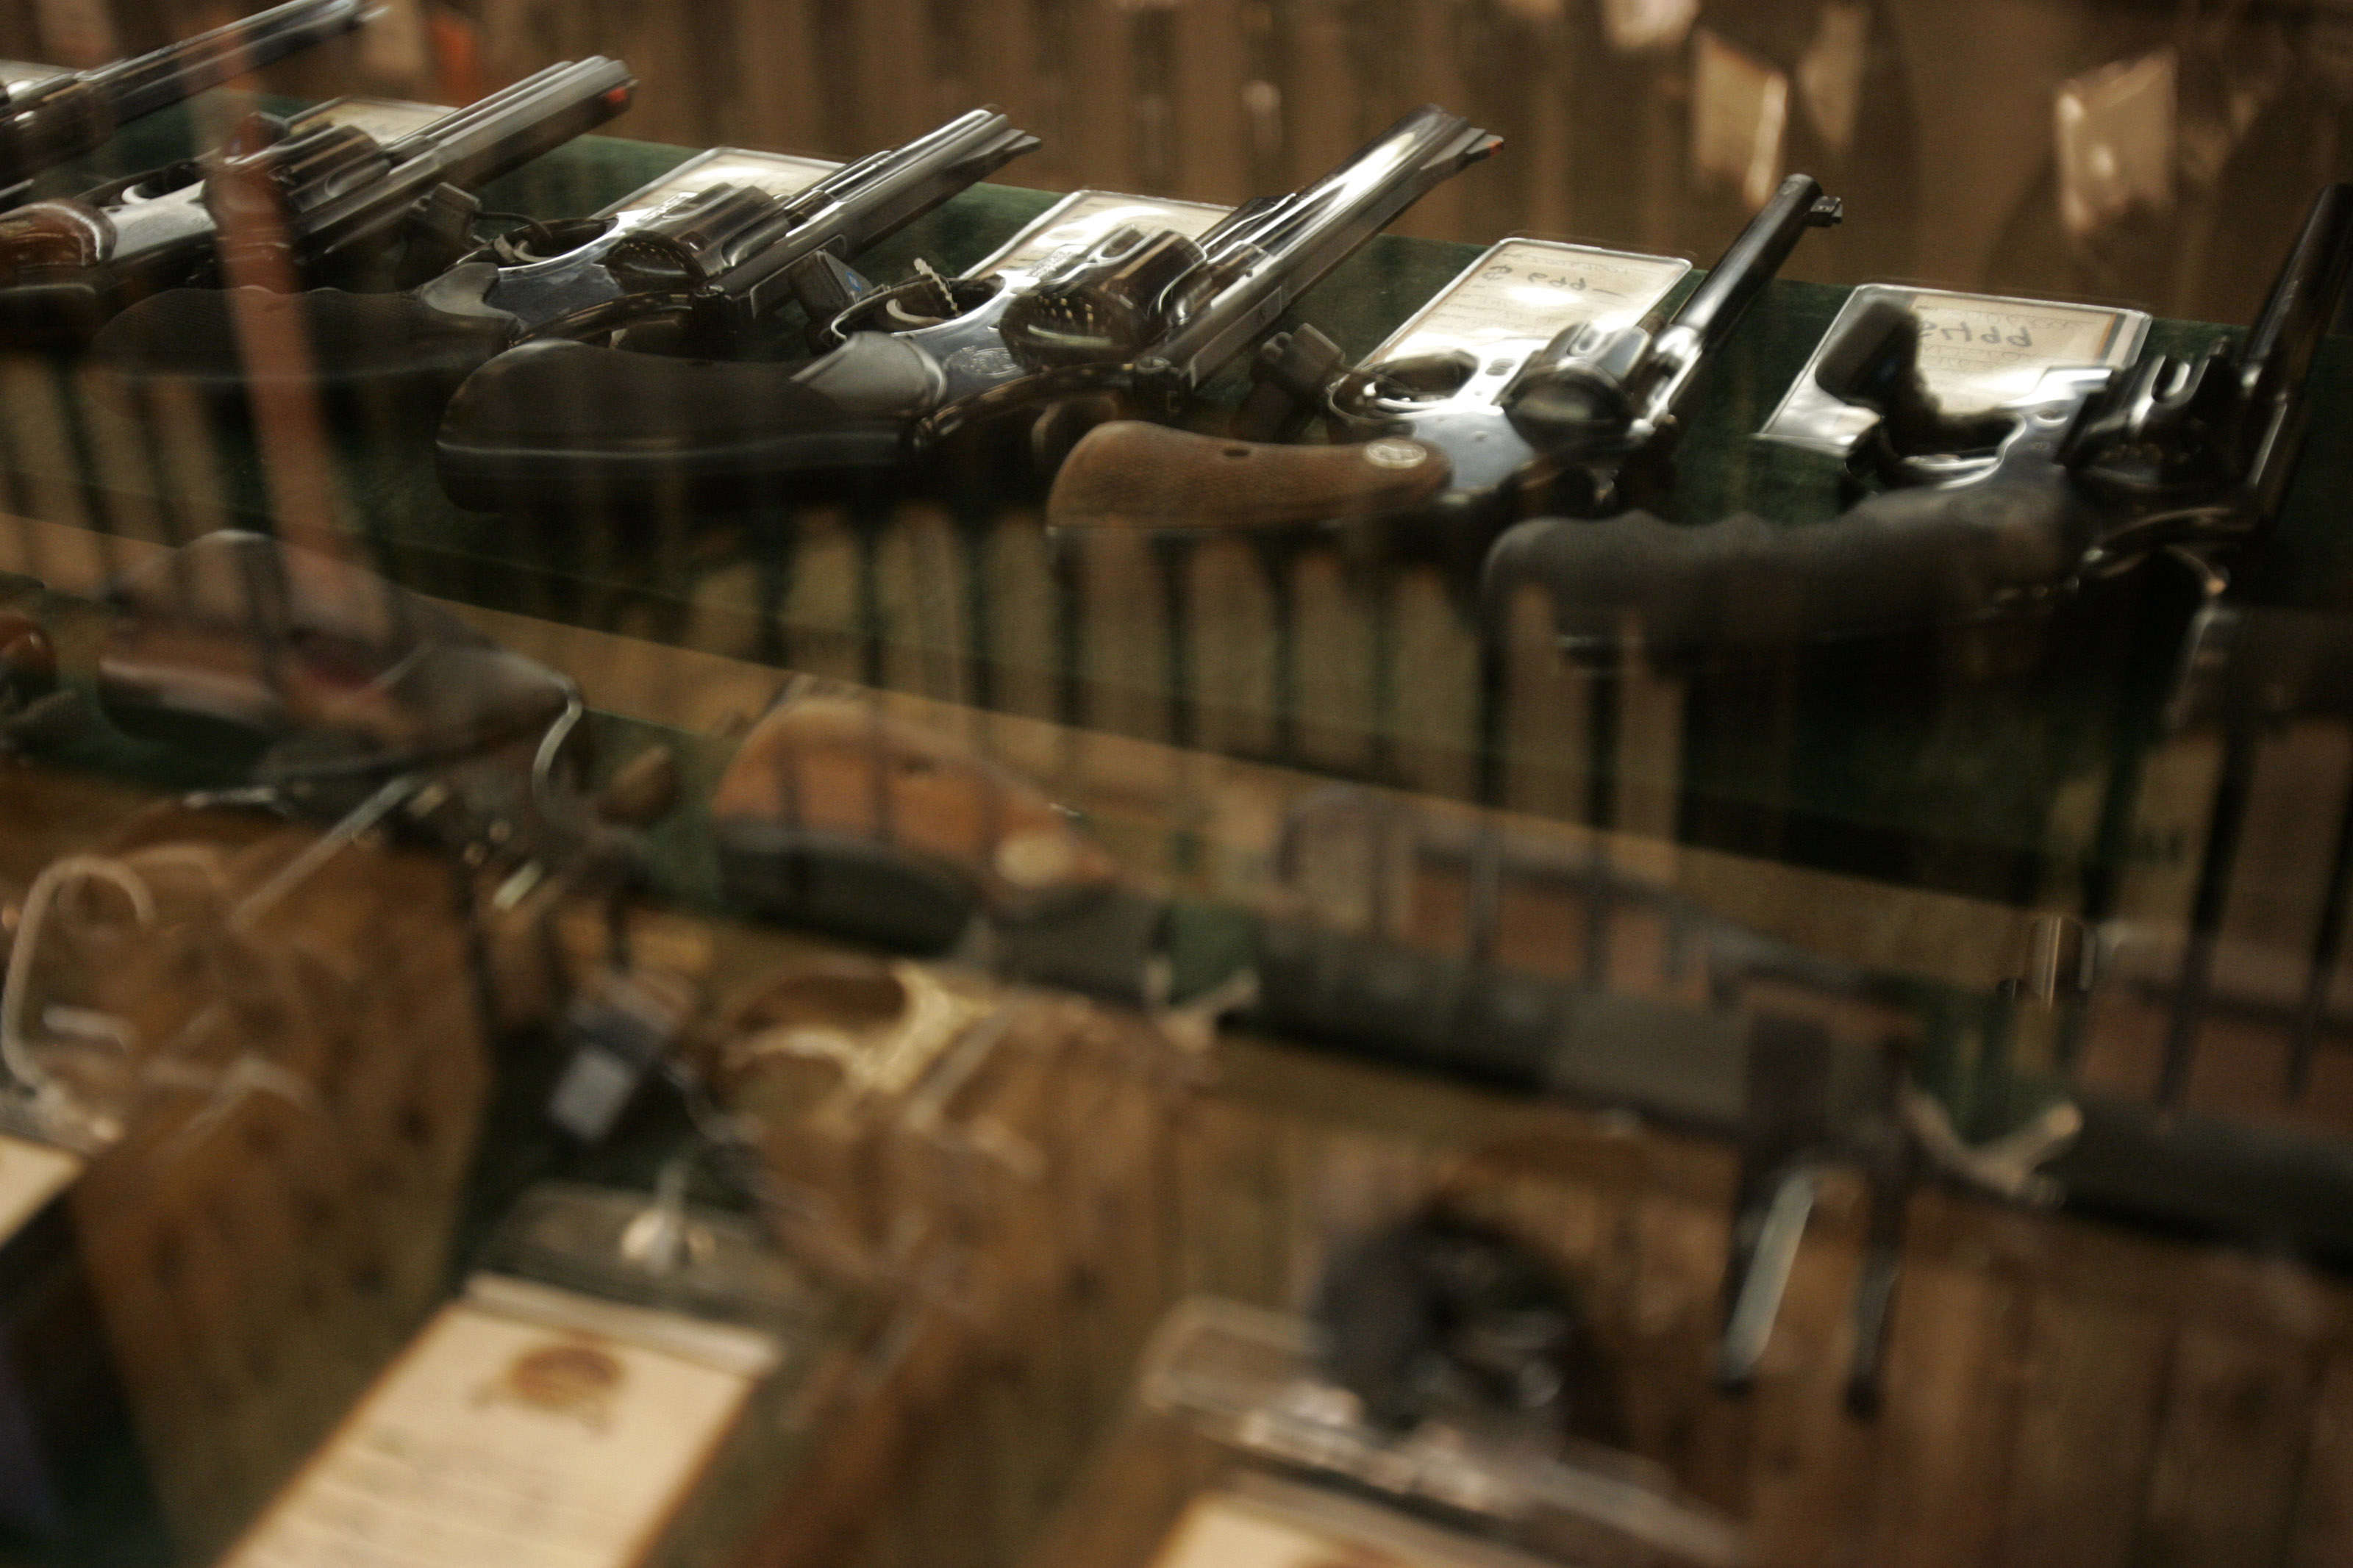 Guns on sale are stored in a case at a gun store in Fort Worth, Texas June 26, 2008. Texas is poised to legalize open carry of handguns for licensed residents. Photo by Jessica Rinaldi/Reuters